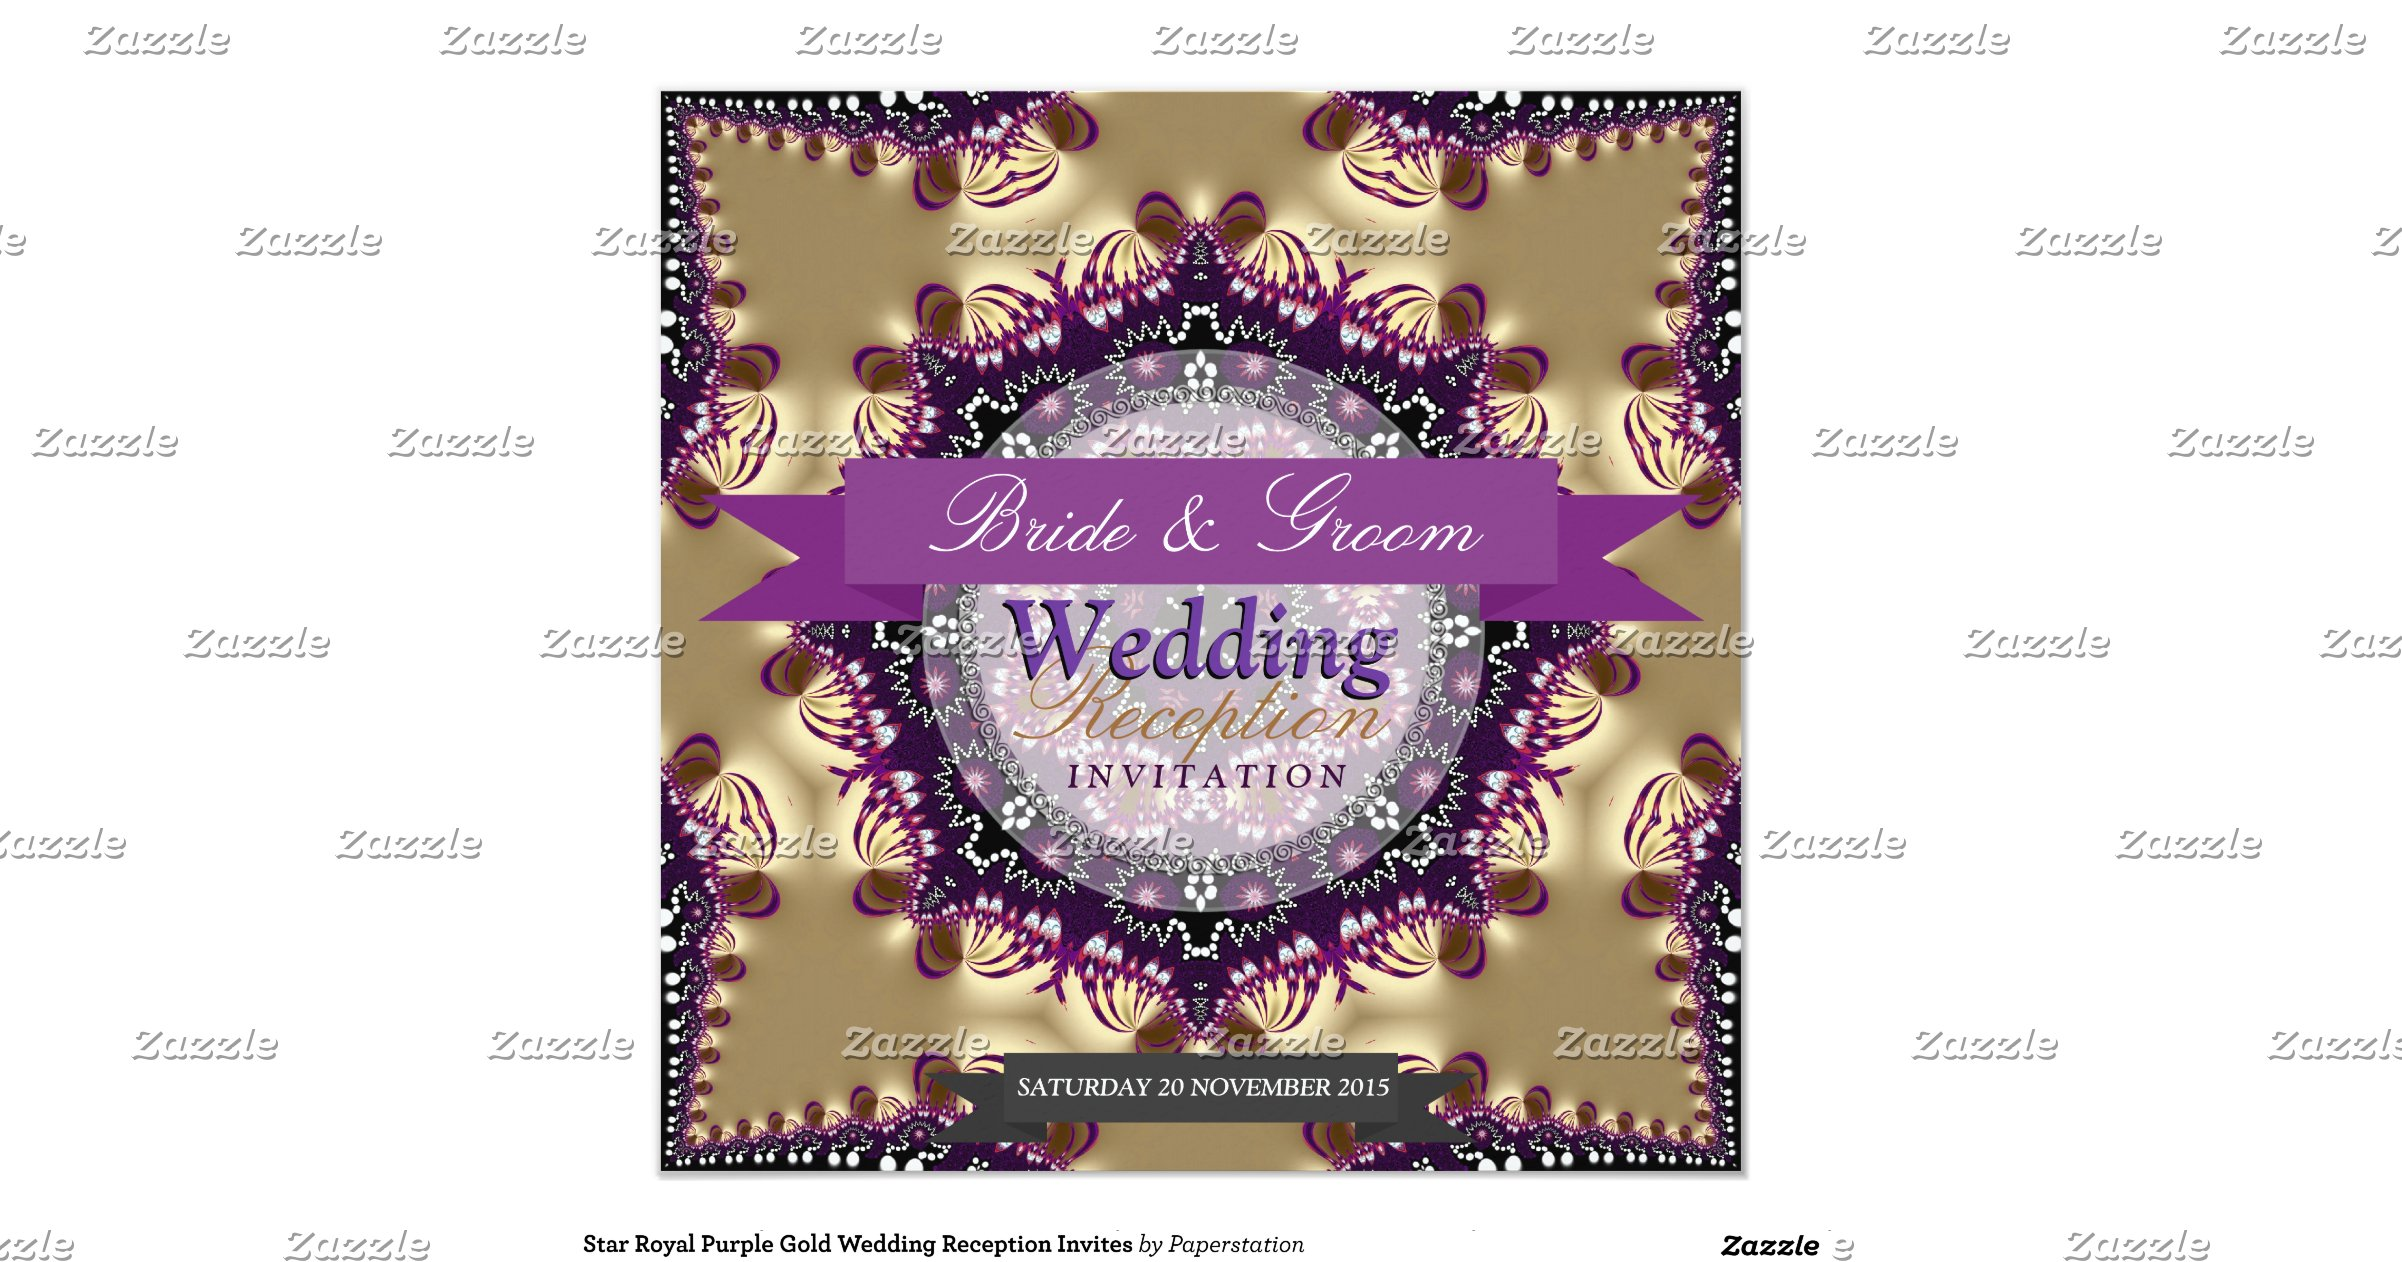 Royal Blue And Gold Wedding Invitations: Star Royal Purple Gold Wedding Reception Invites 5.25